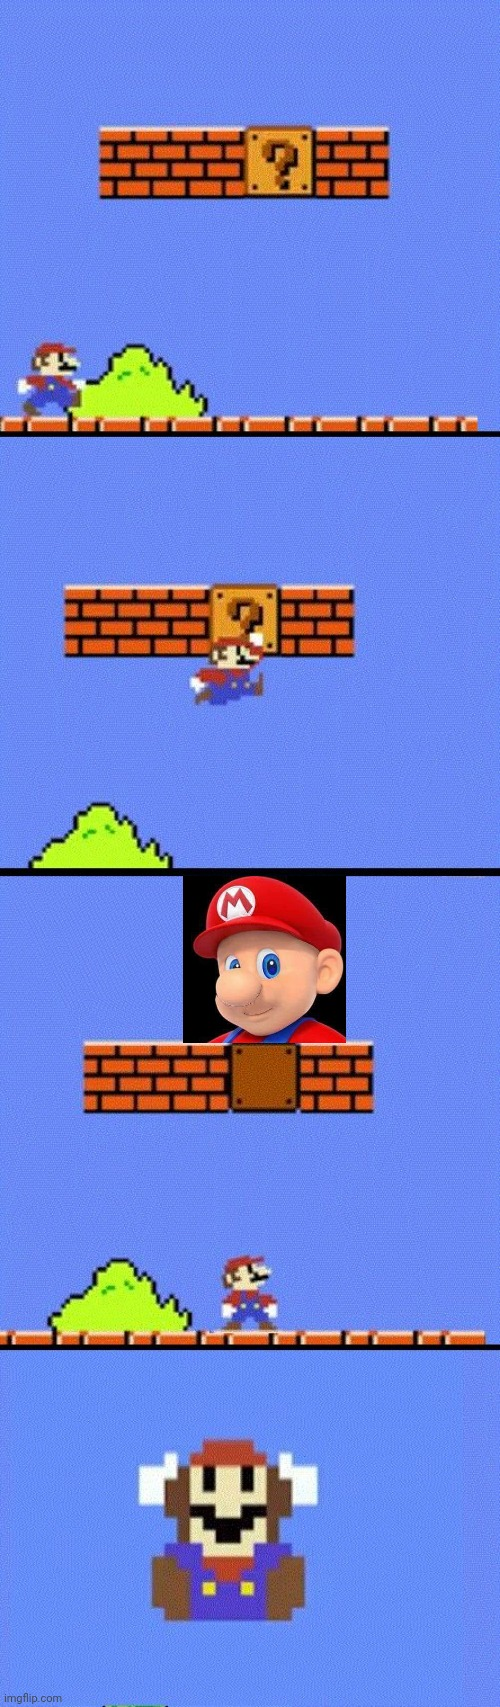 IS MARIO FIGHTING CANCER? | image tagged in mario dies,super mario bros,mustache,mario | made w/ Imgflip meme maker